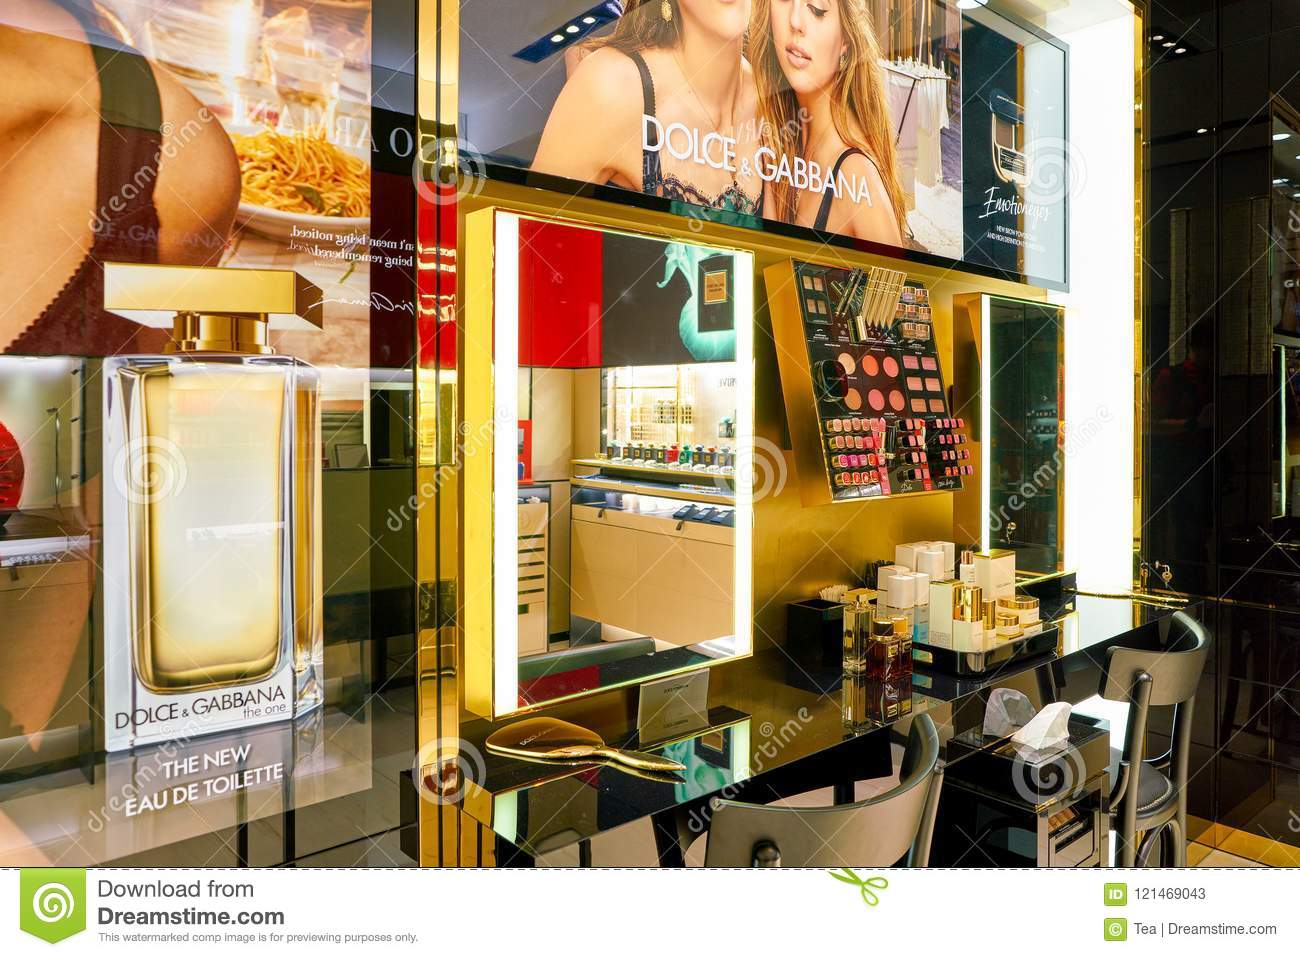 Dolce & Gabbana editorial stock photo  Image of sell - 121469043